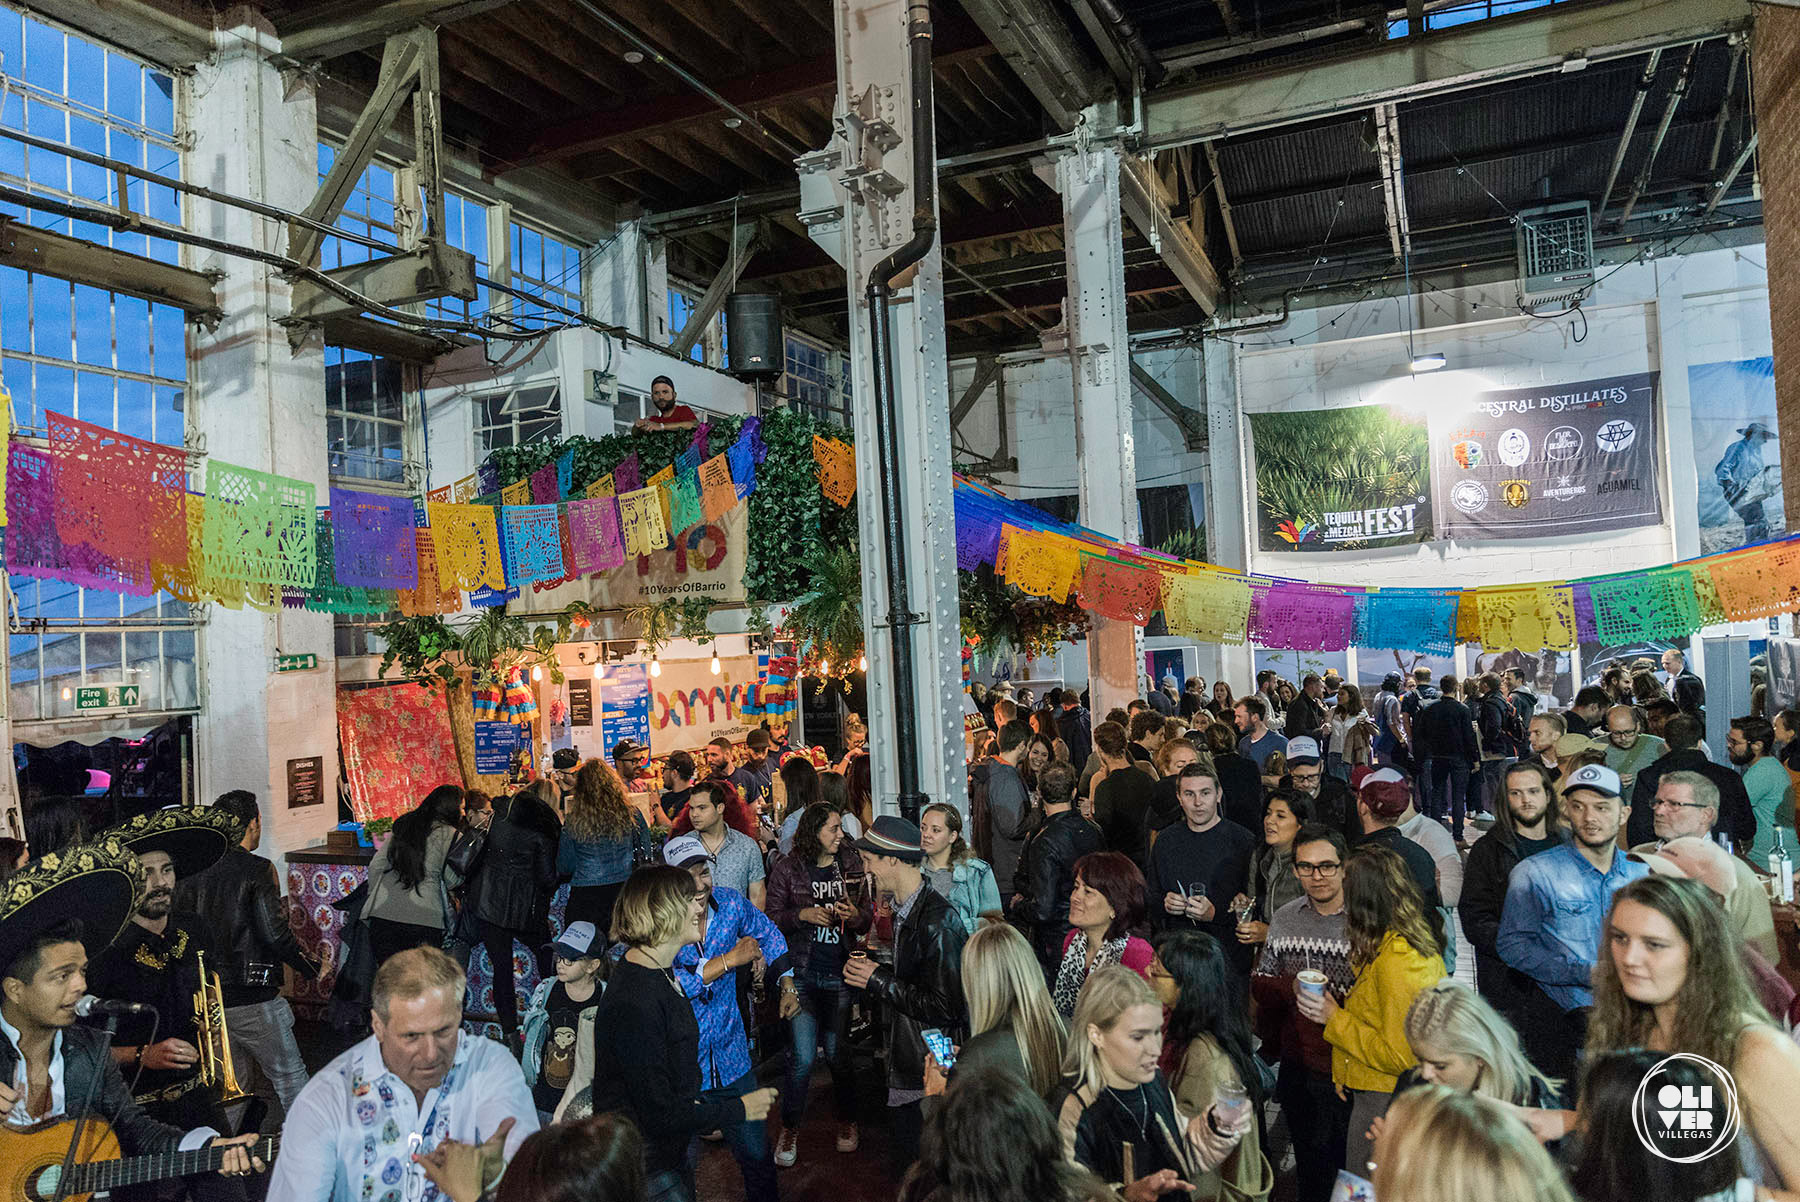 Tequila and MezcalFest 2017, by Oliver Villegas